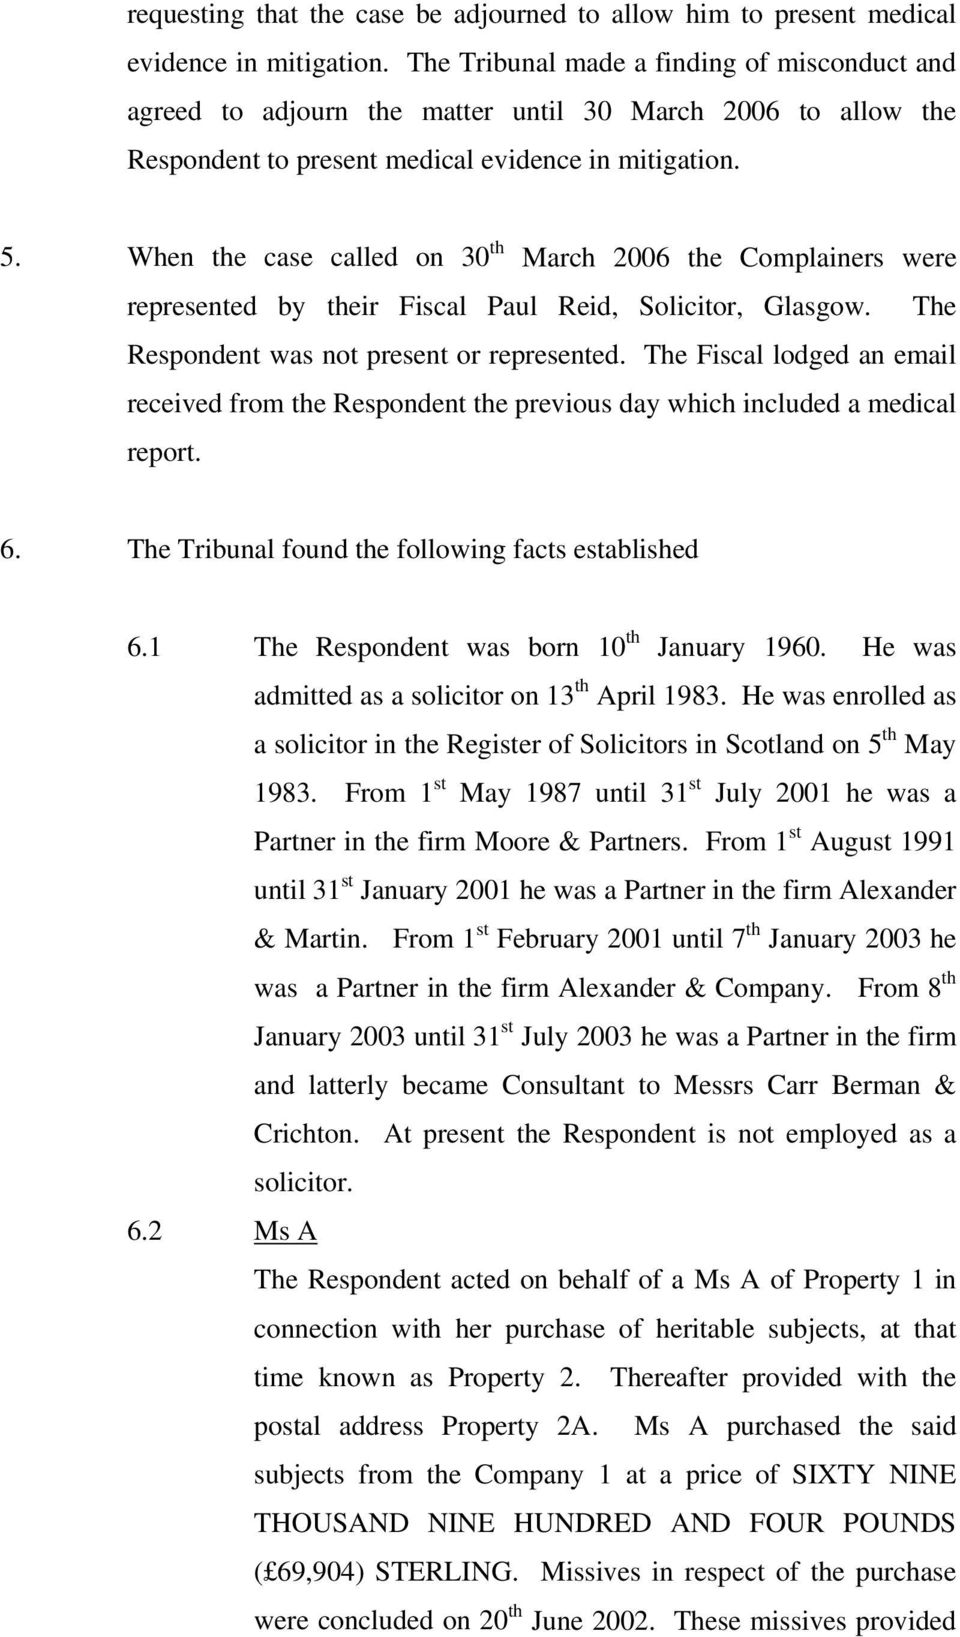 When the case called on 30 th March 2006 the Complainers were represented by their Fiscal Paul Reid, Solicitor, Glasgow. The Respondent was not present or represented.